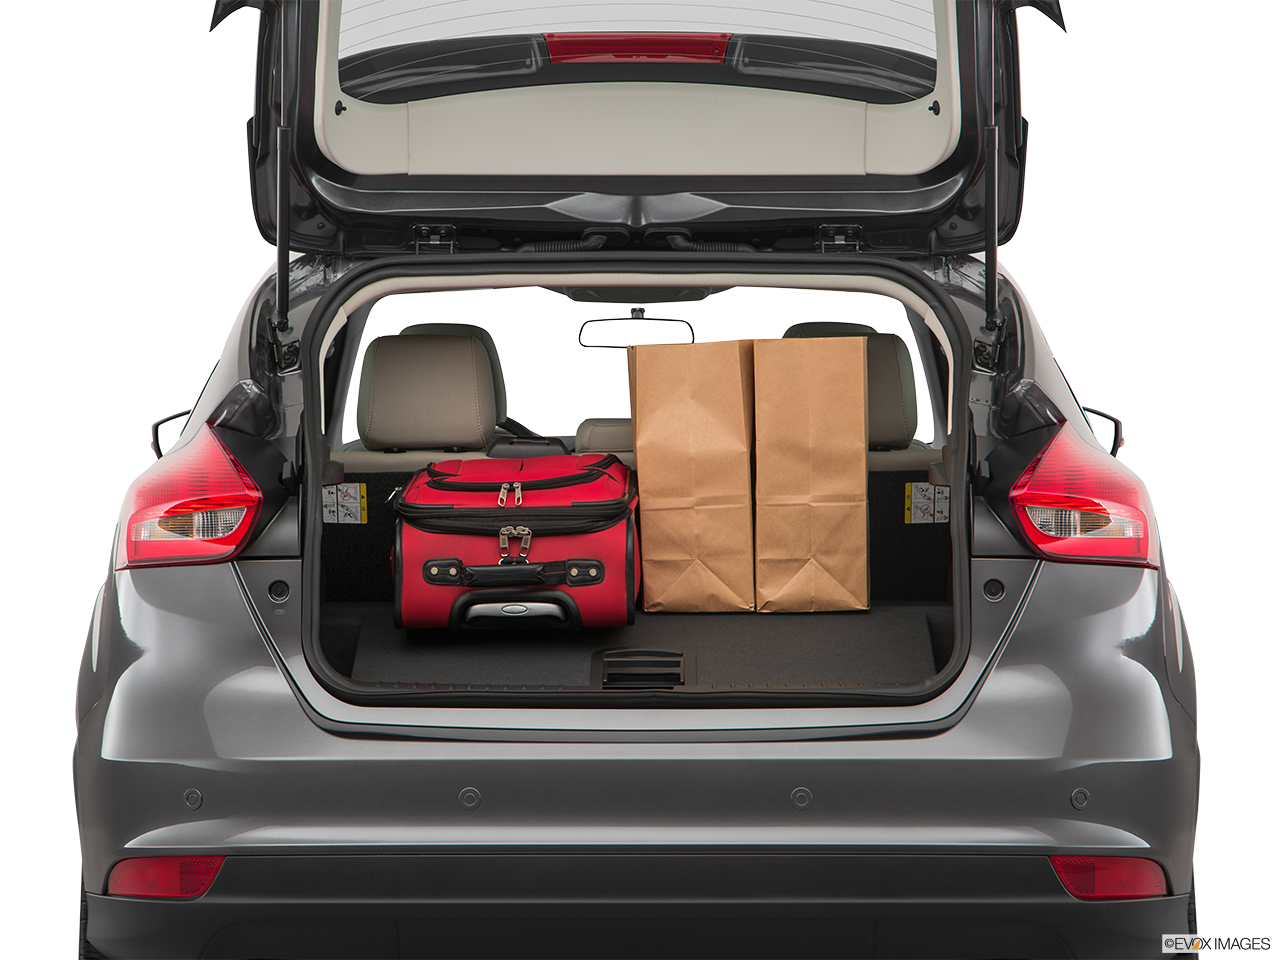 Trunk view of the Ford Focus Electric